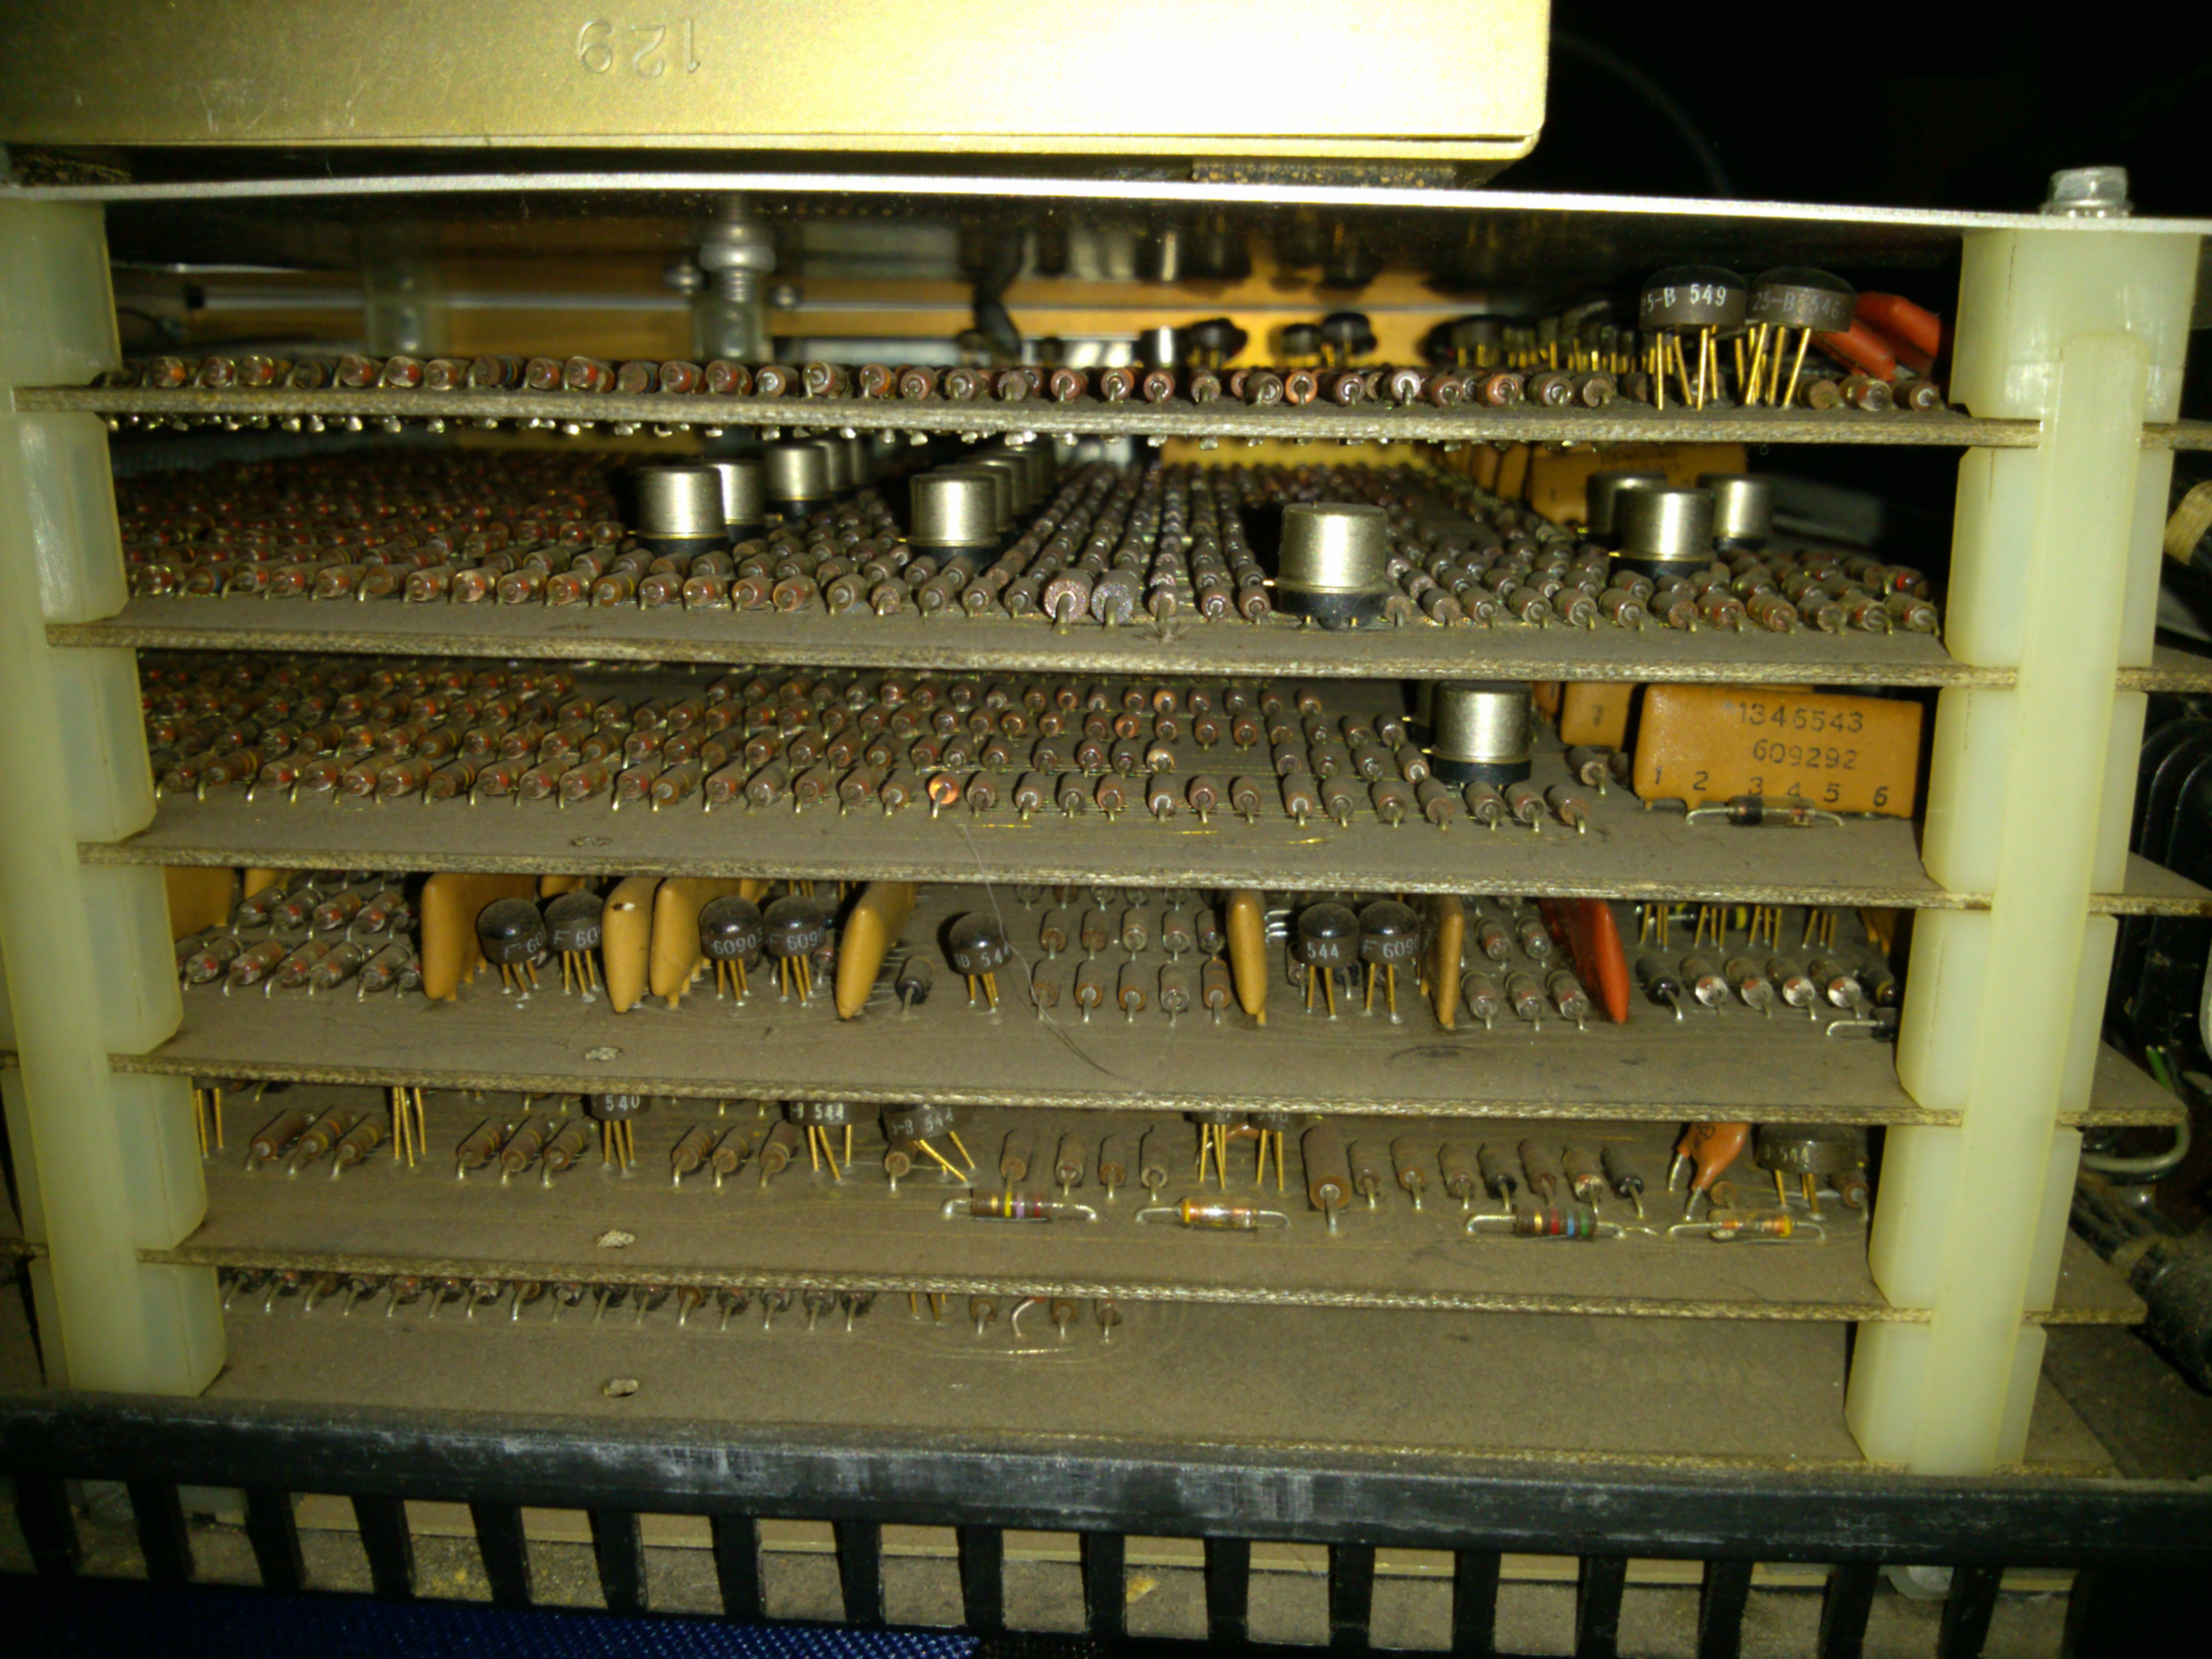 Make Logic Gates Out Of Almost Anything Hackaday Schematic Window Will Appear With The Built Gate Diagram My Smith Corona Marchant Cogito 240sr Calculator Uses Resistor Diode And Transistor It Dates To Around 1965